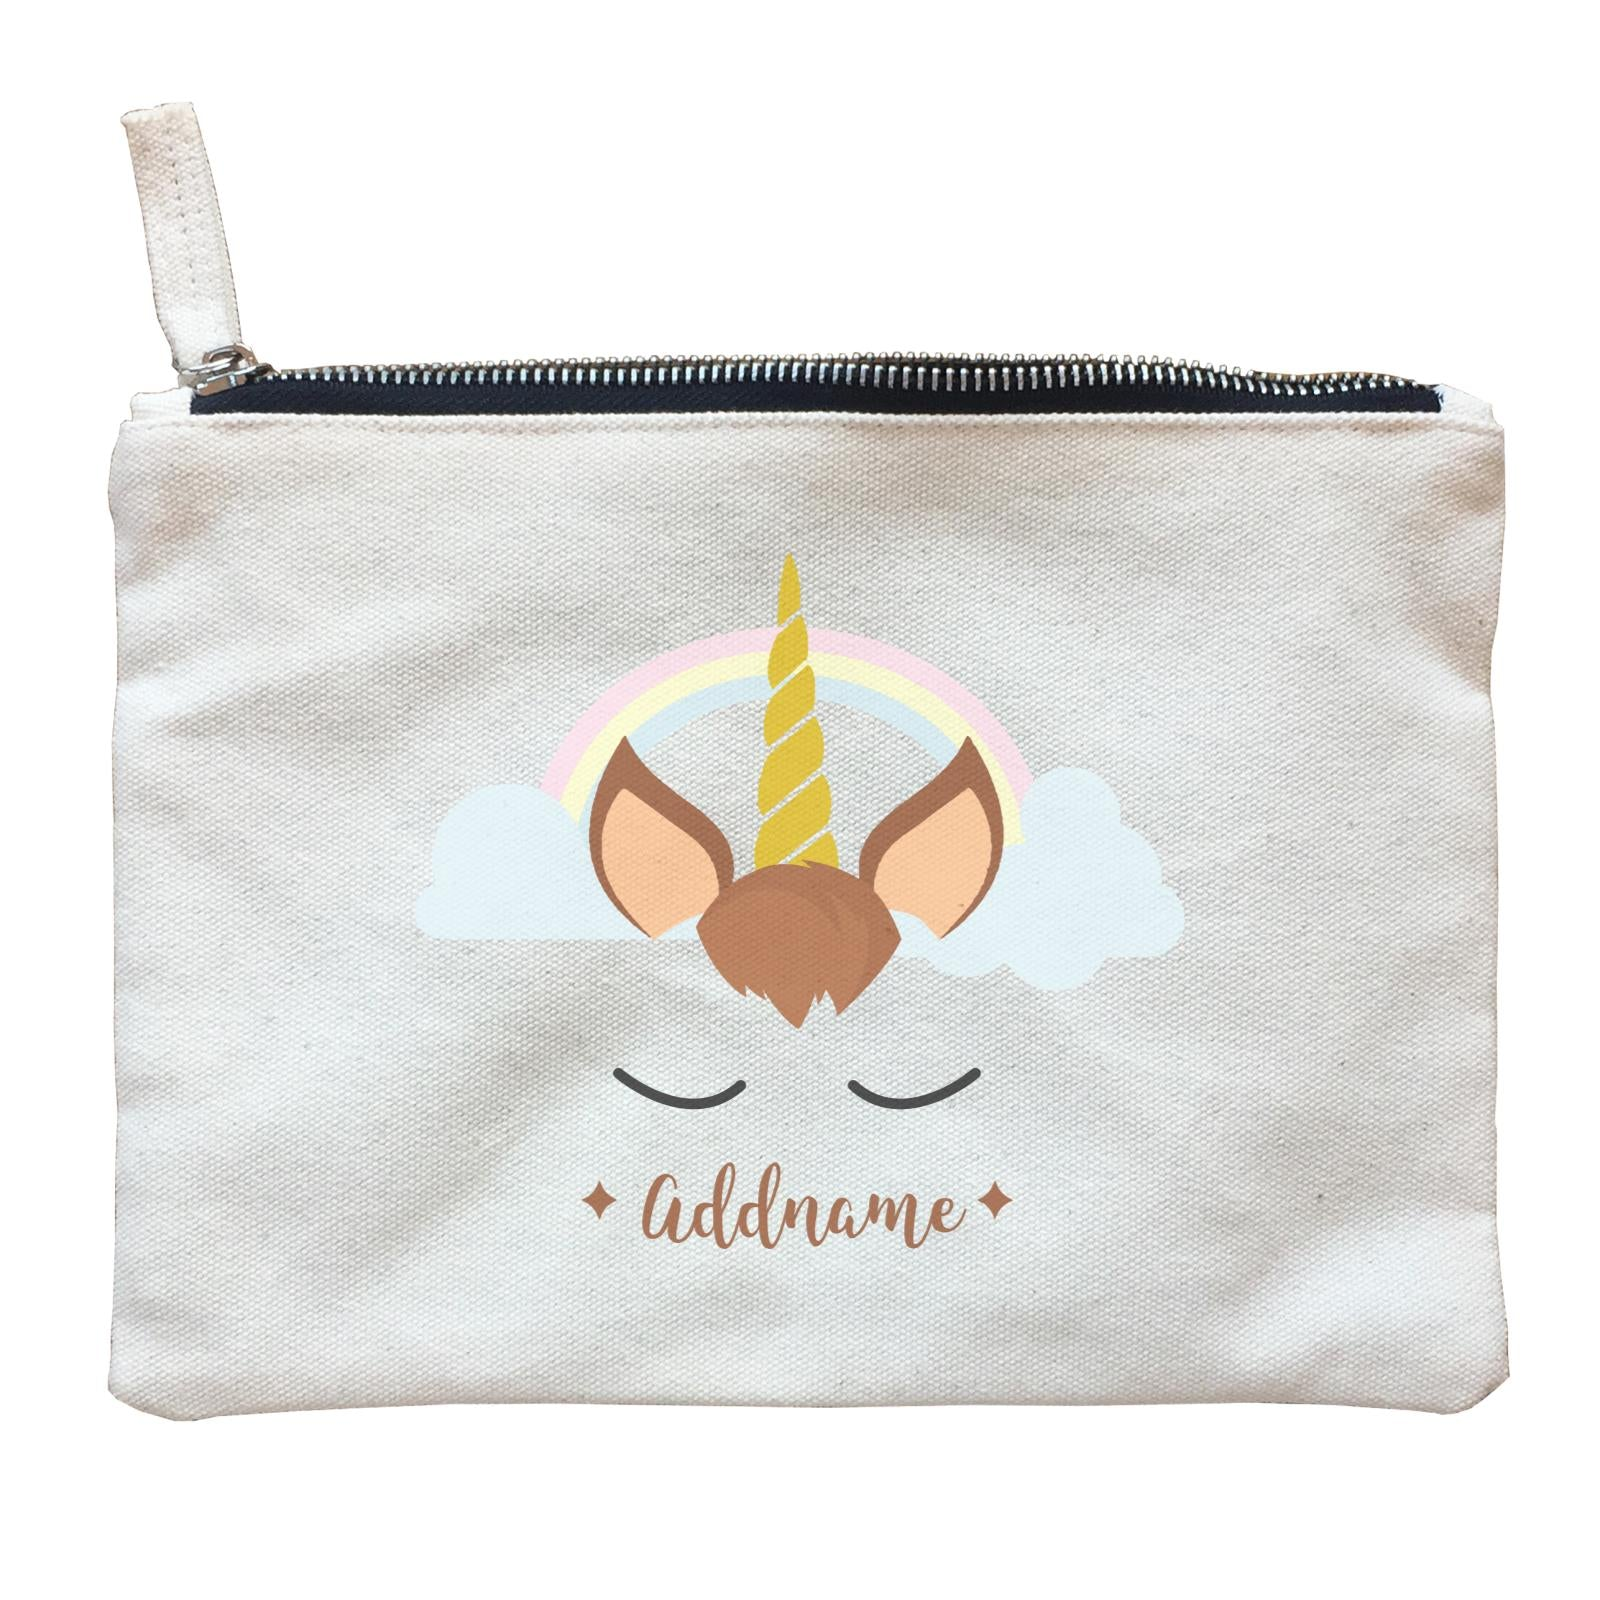 Unicorn Face Boy Addname Zipper Pouch